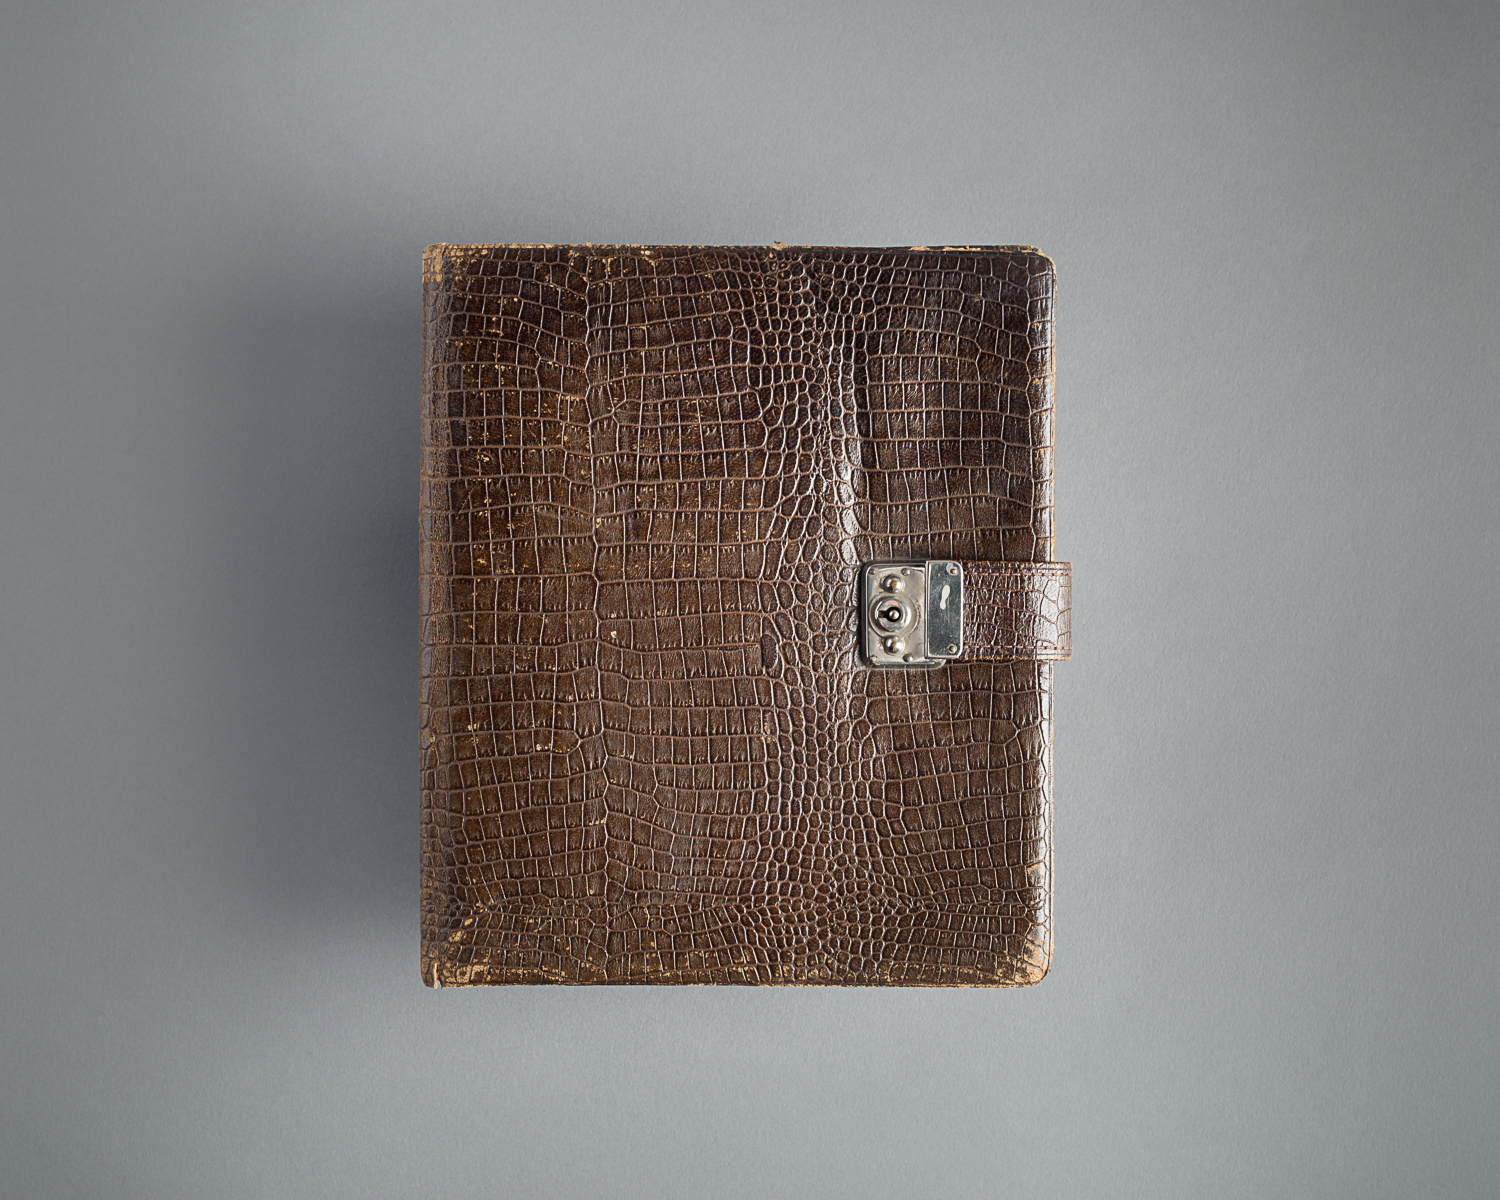 This book belonged to Hanna Landé, a German Jew interned in Gurs camp in South of France. (Photo: Peter Berra)